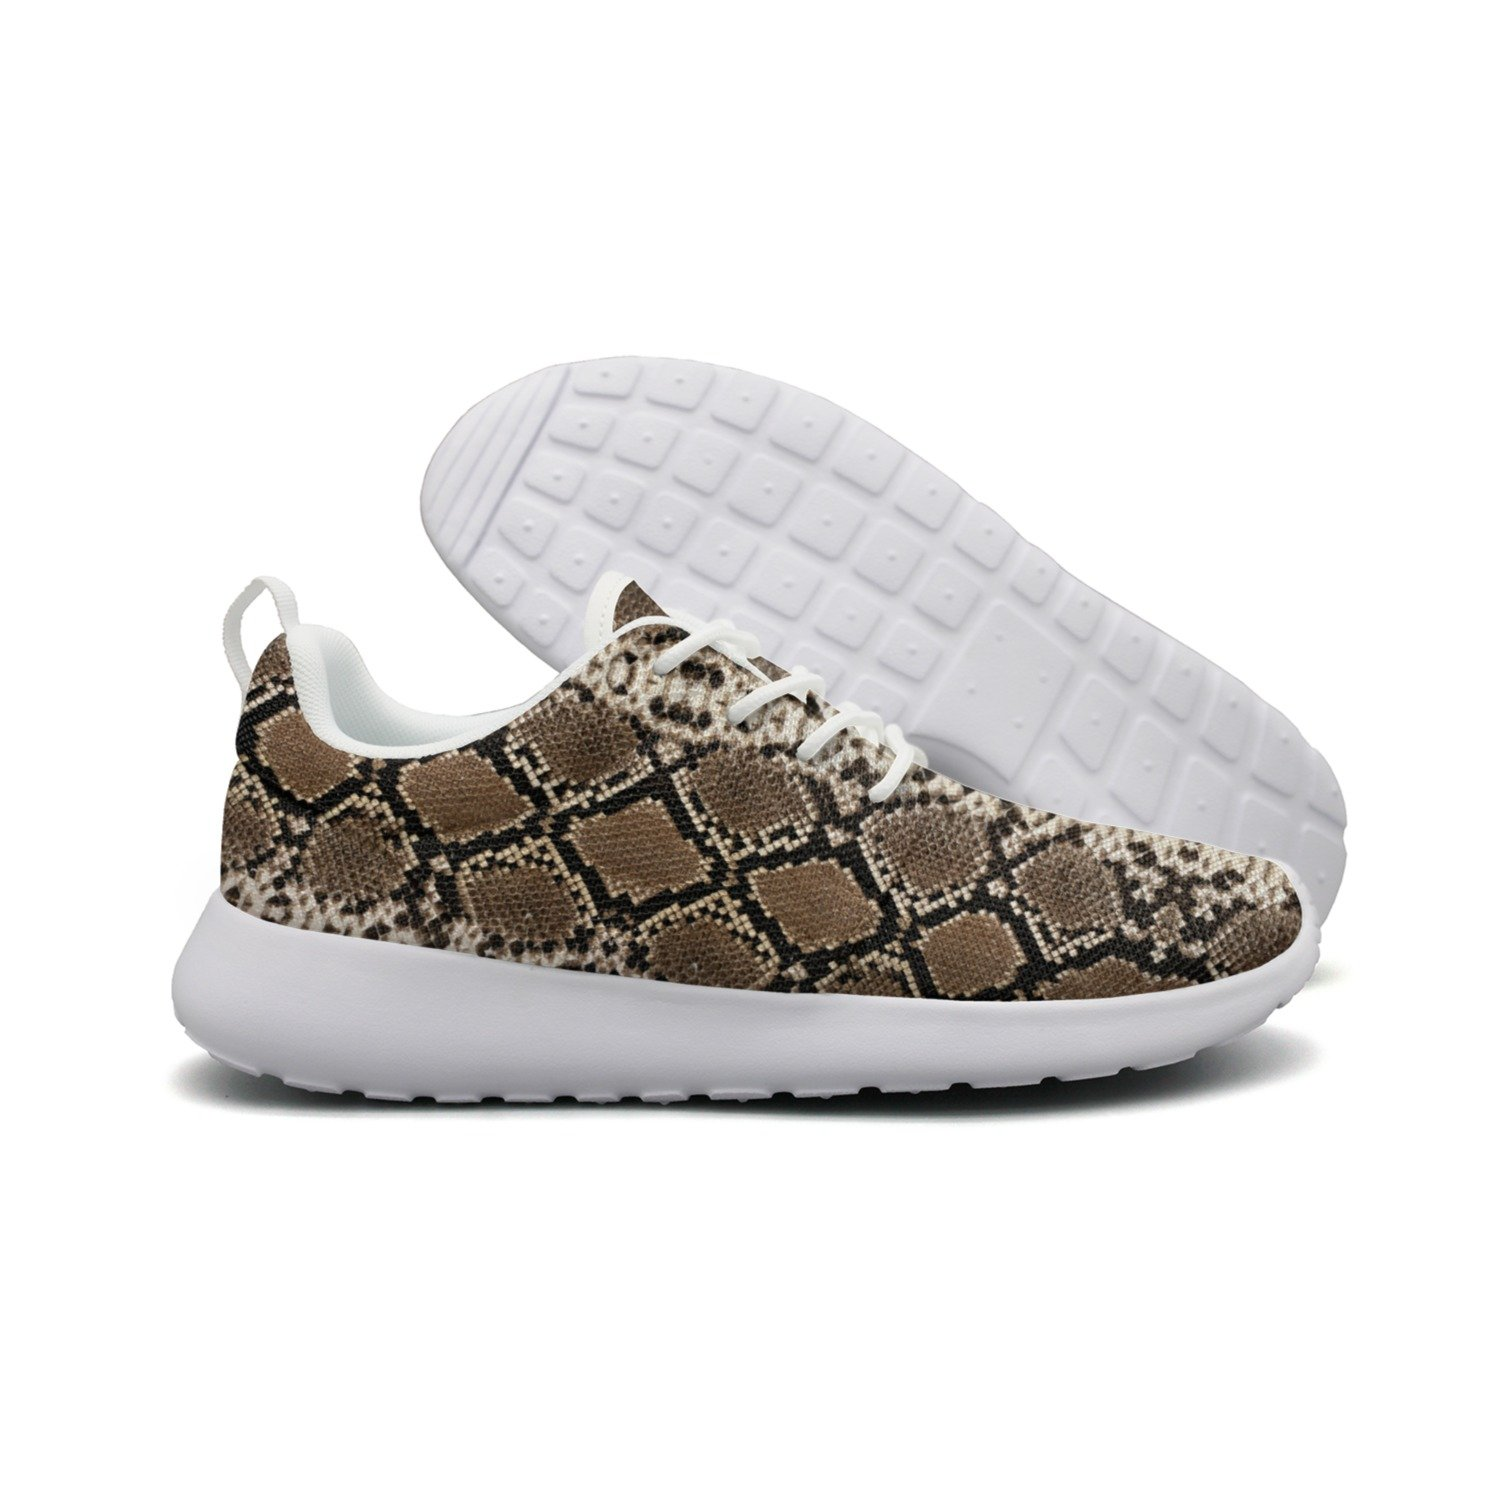 FUFGT Black Snake Skin Women Printing Design Running Shoes Unique Comfortable